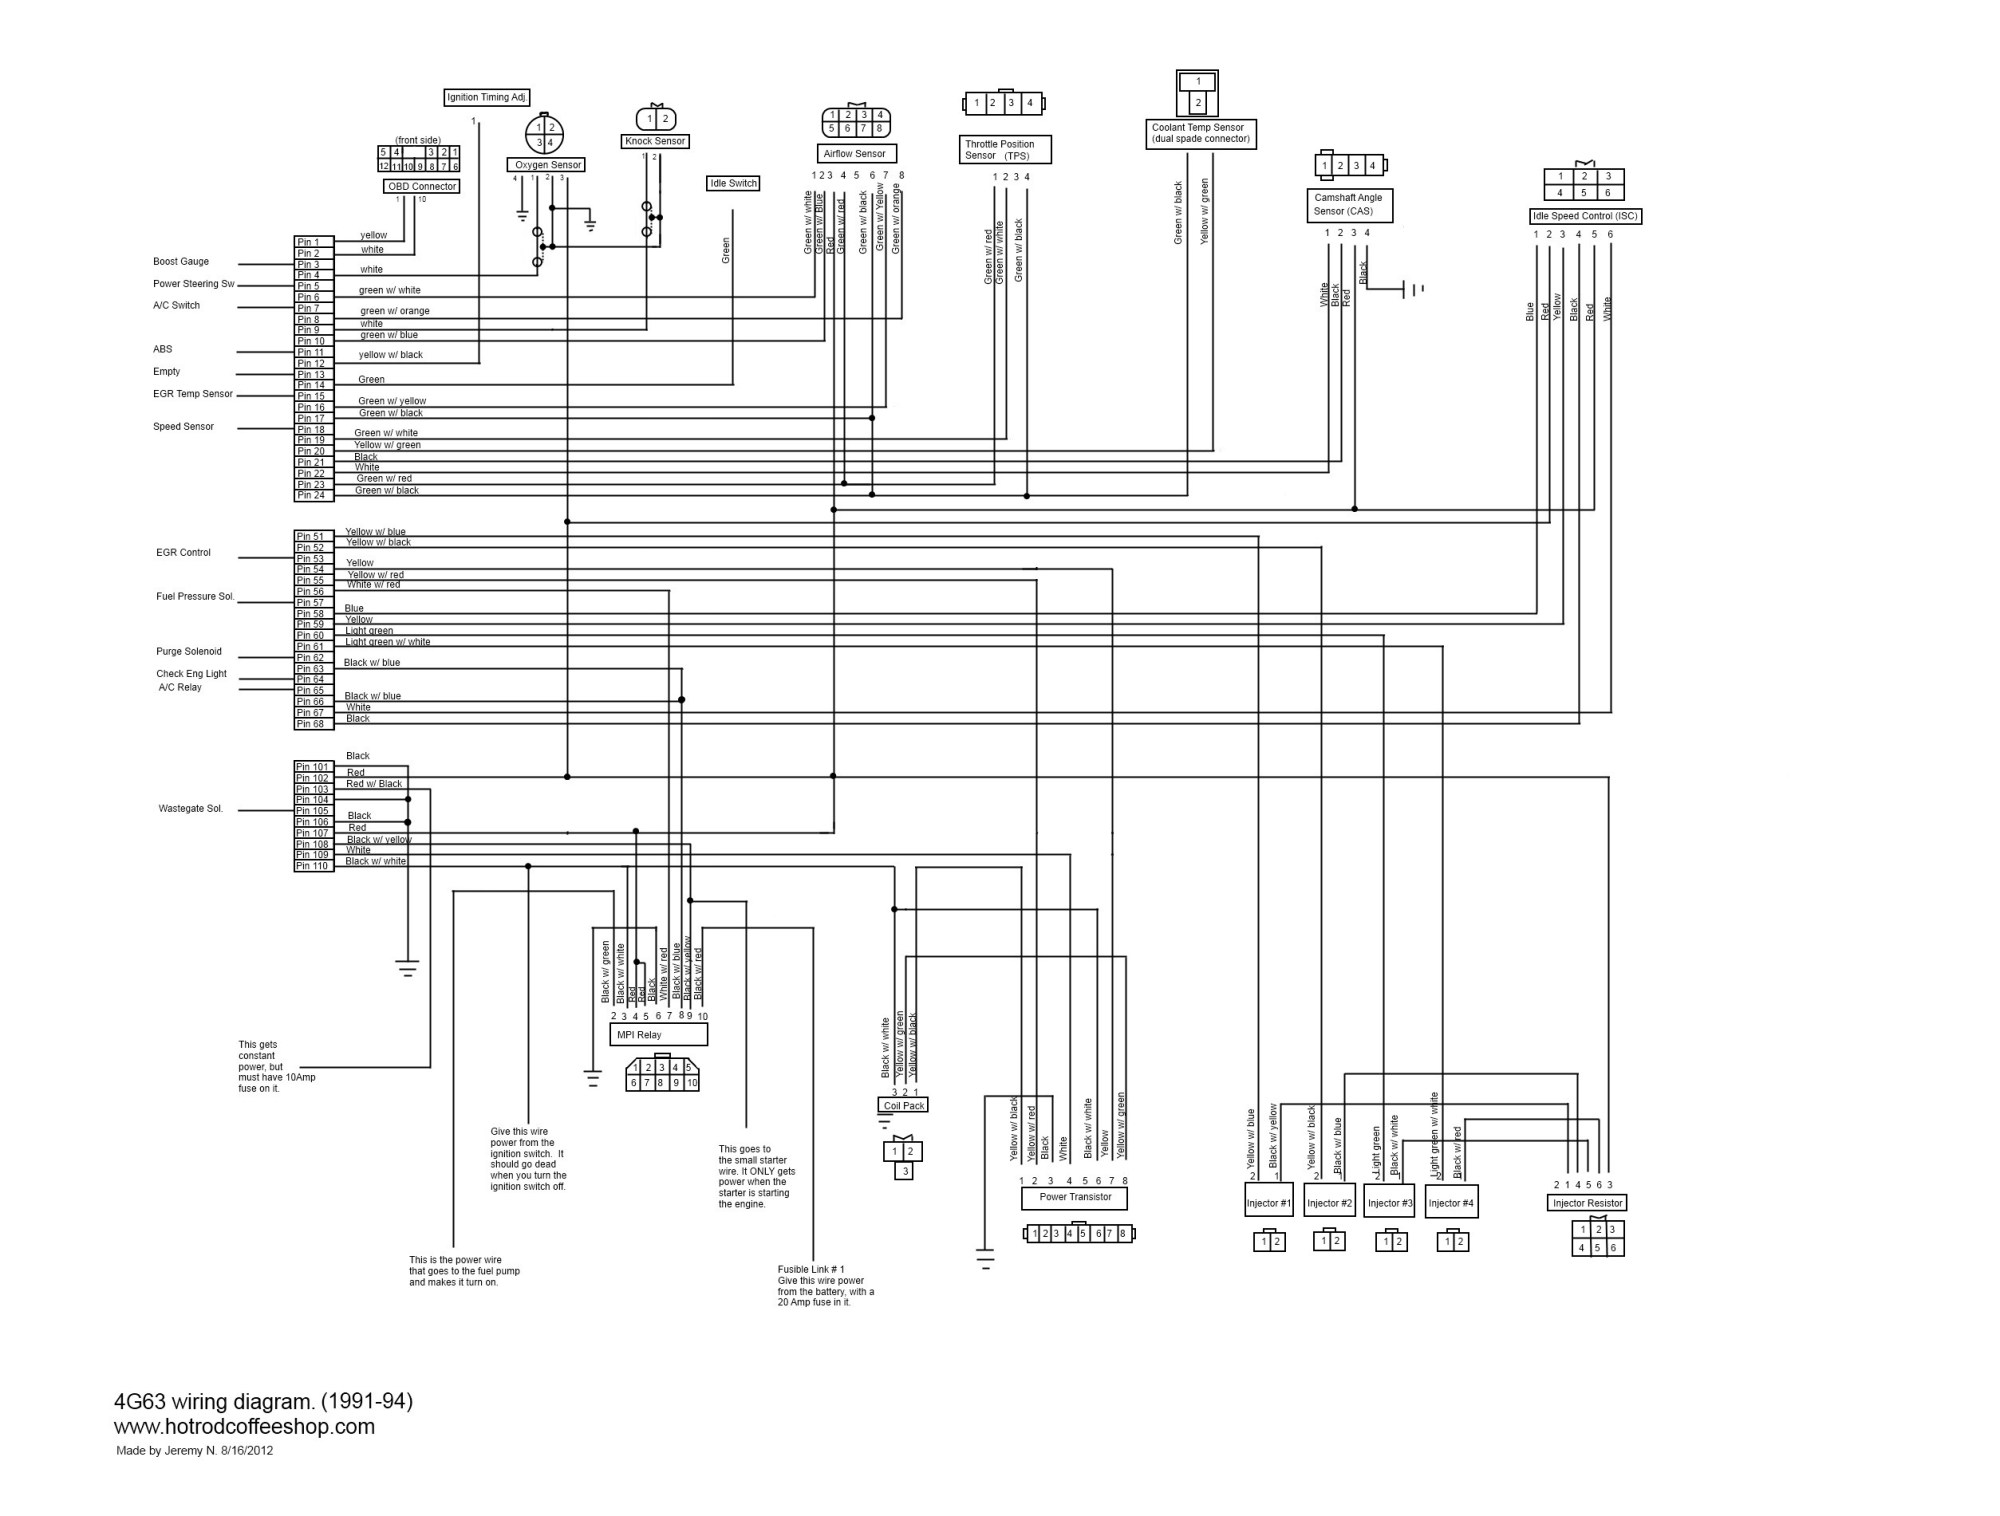 hight resolution of mitsubishi galant maf wiring diagram wiring diagram rows chevy silverado in addition 2002 mitsubishi diamante engine diagram